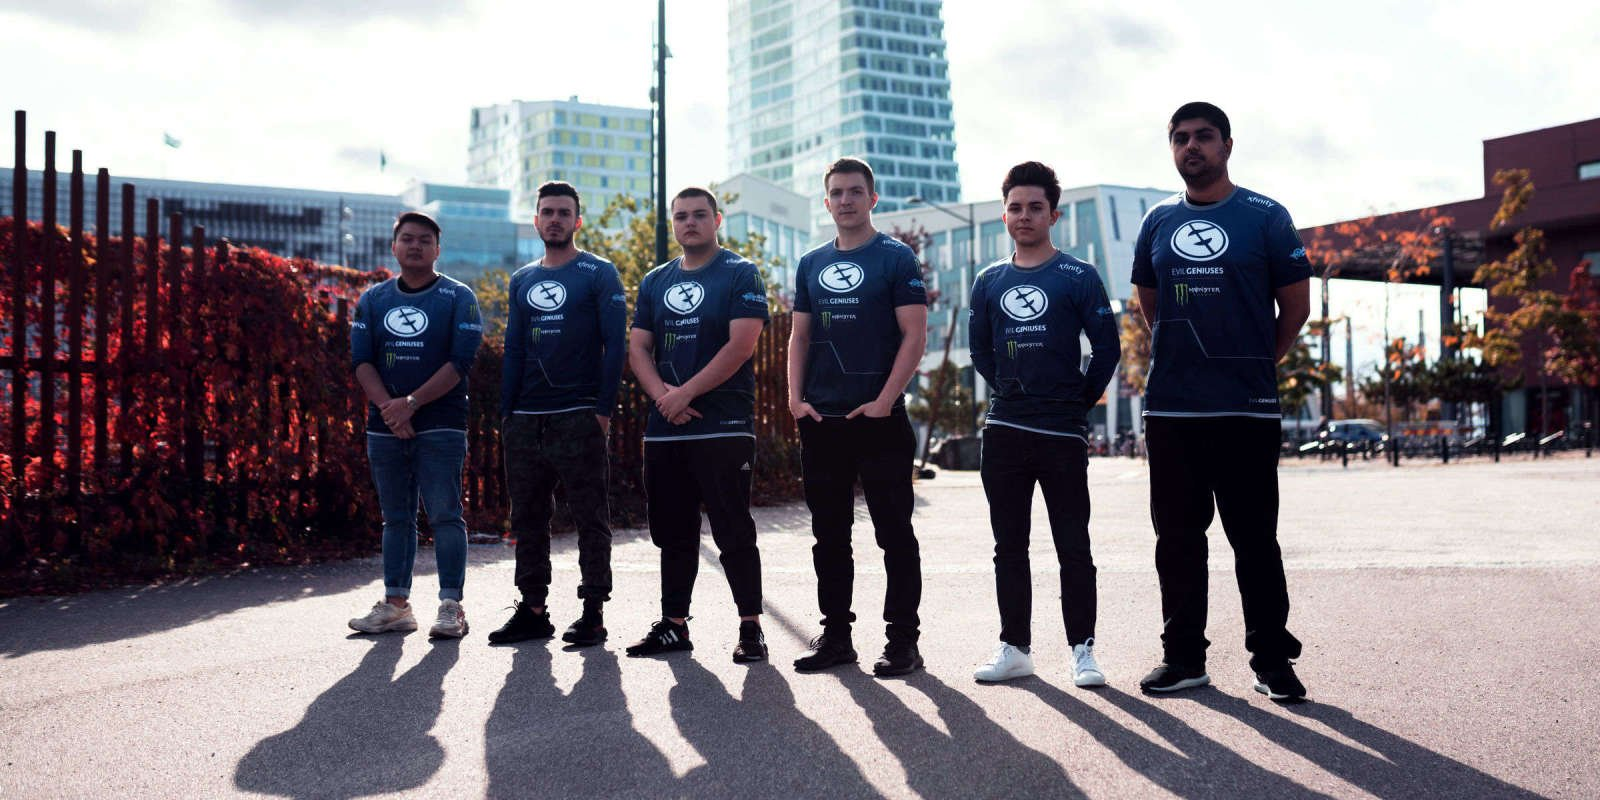 Photos of Evil Geniuses' CSGO team